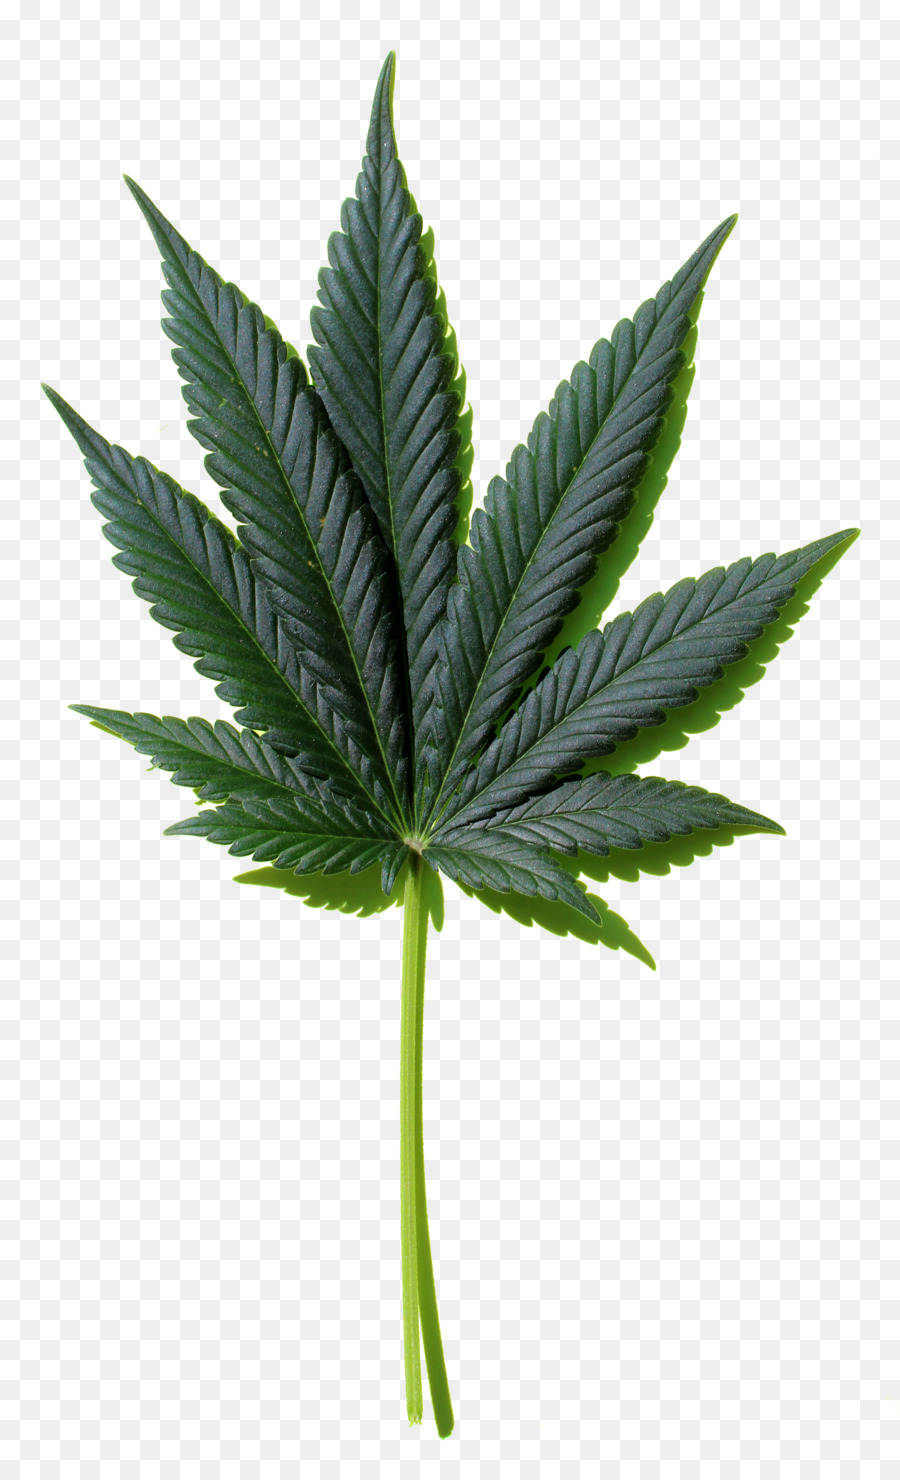 Cannabis Leaf Background png download.